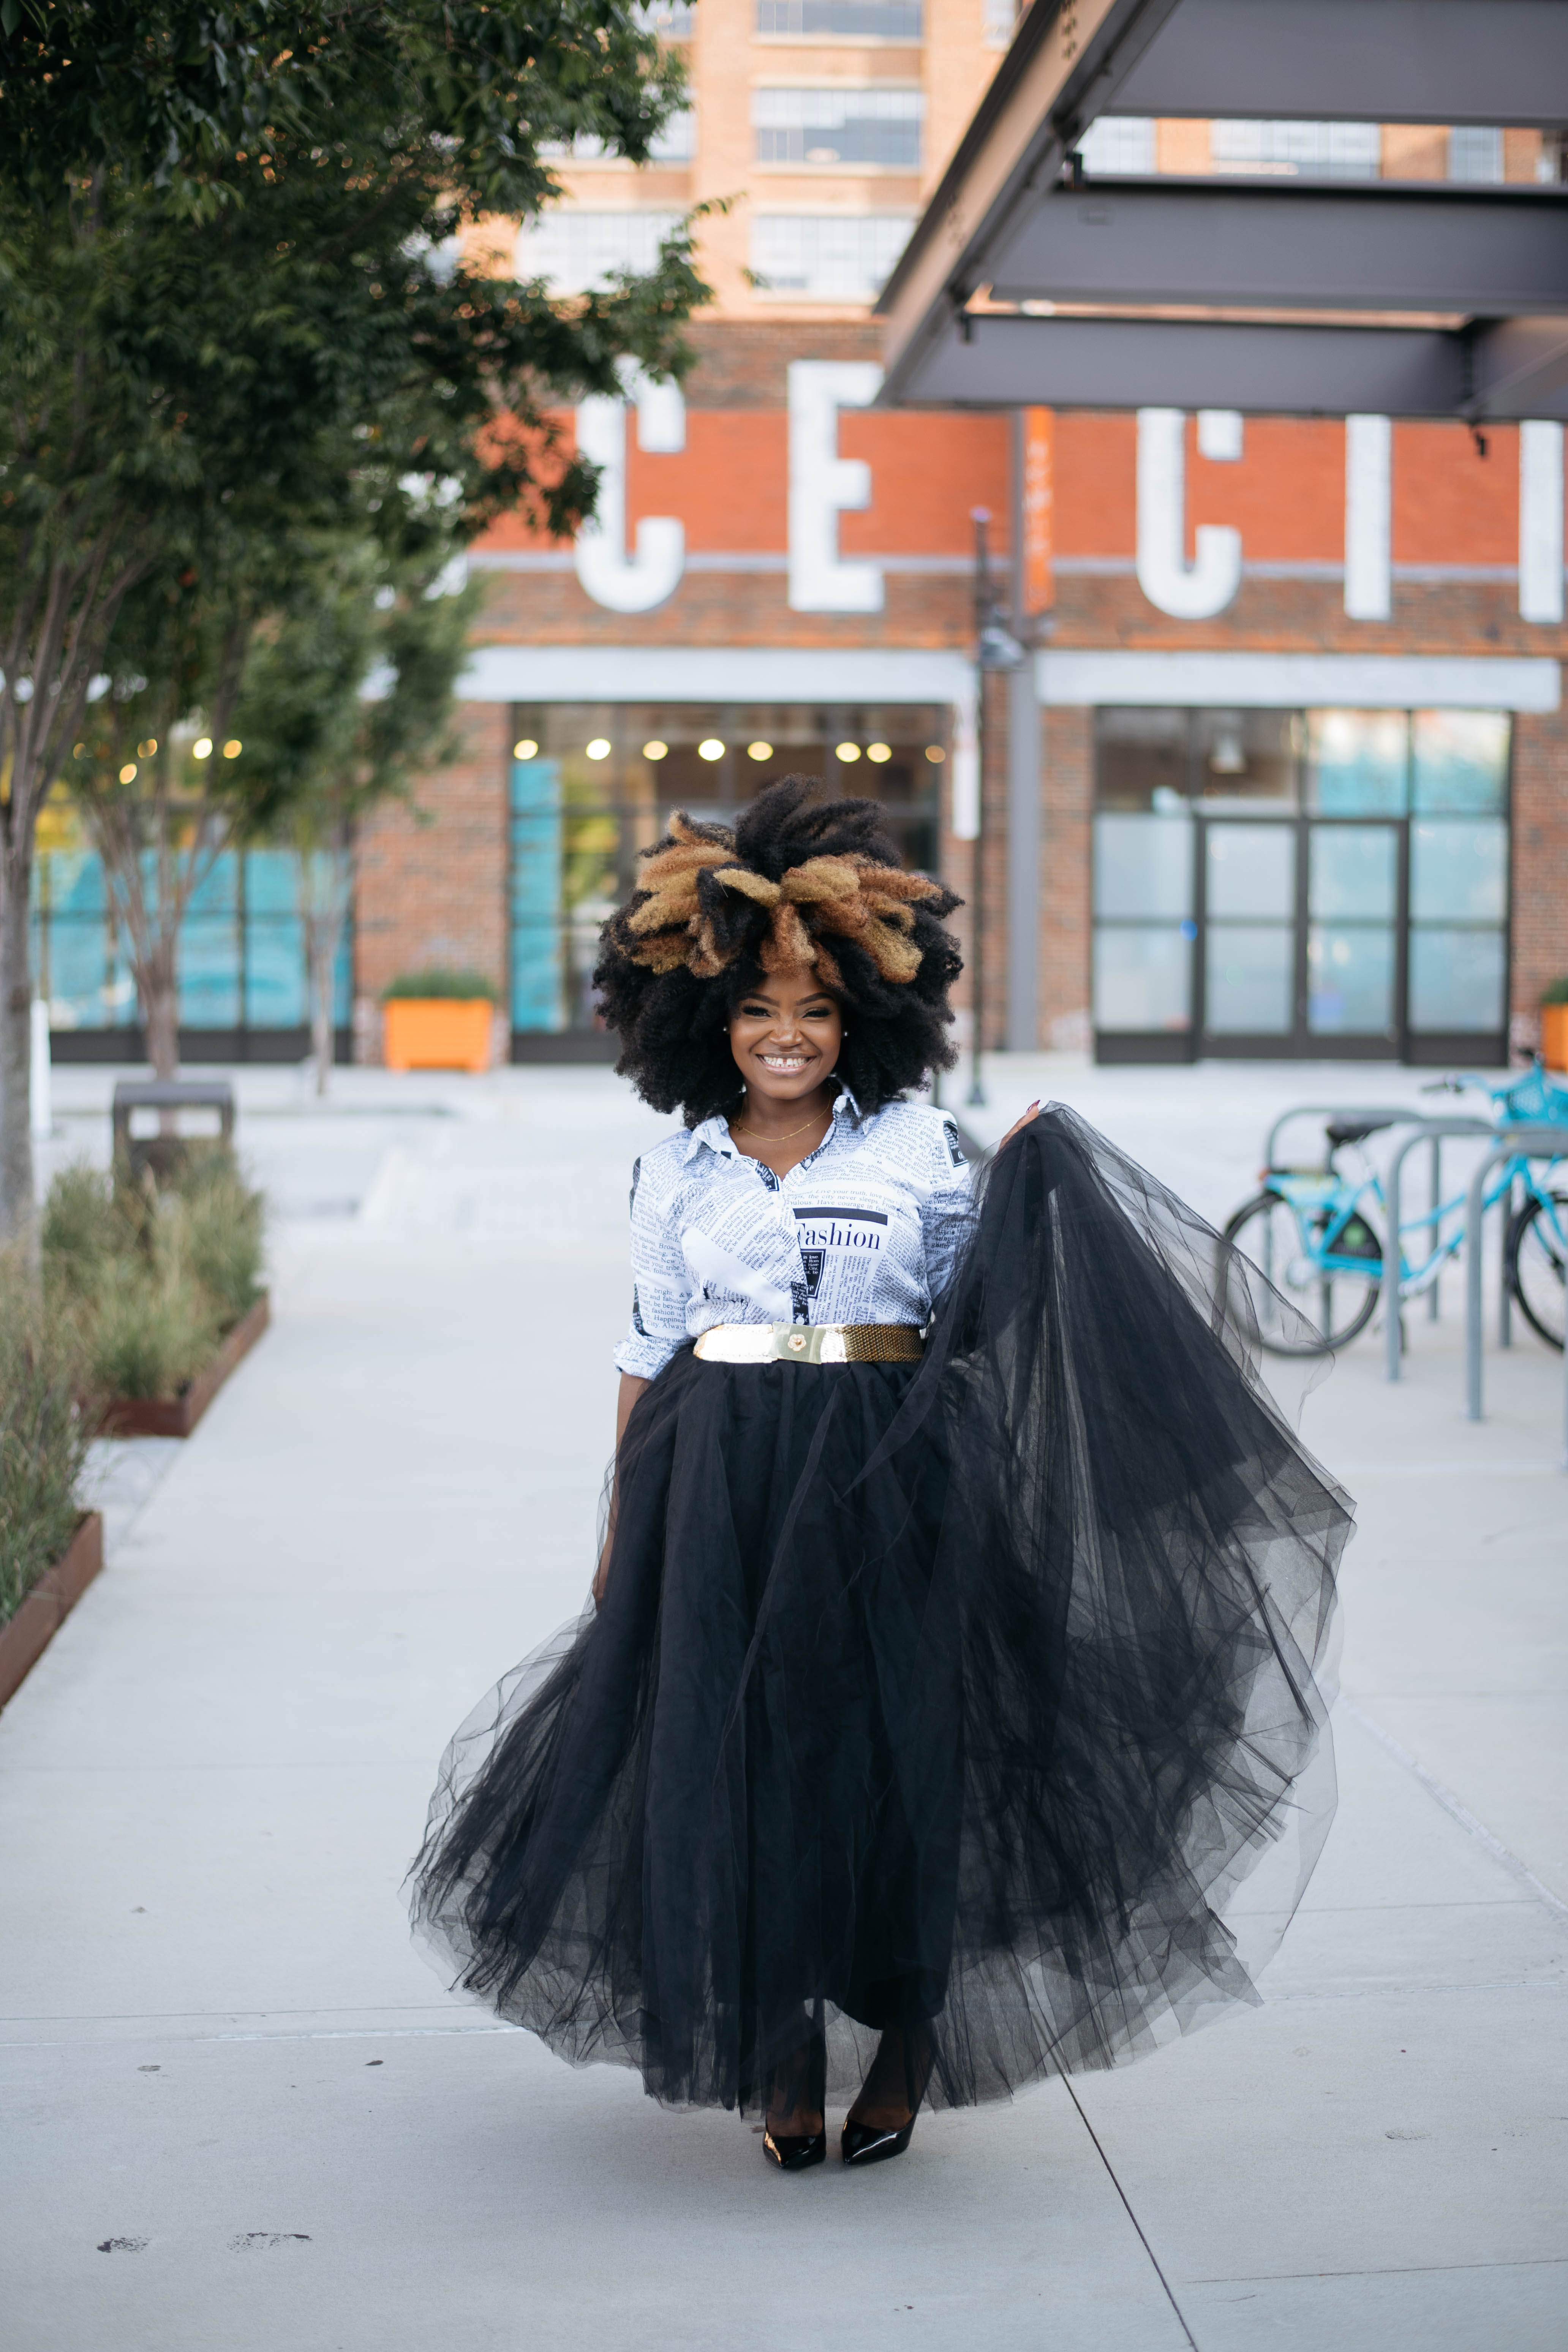 3 WAYS TO WEAR YOUR LONG TUTU SKIRT FOR FALL